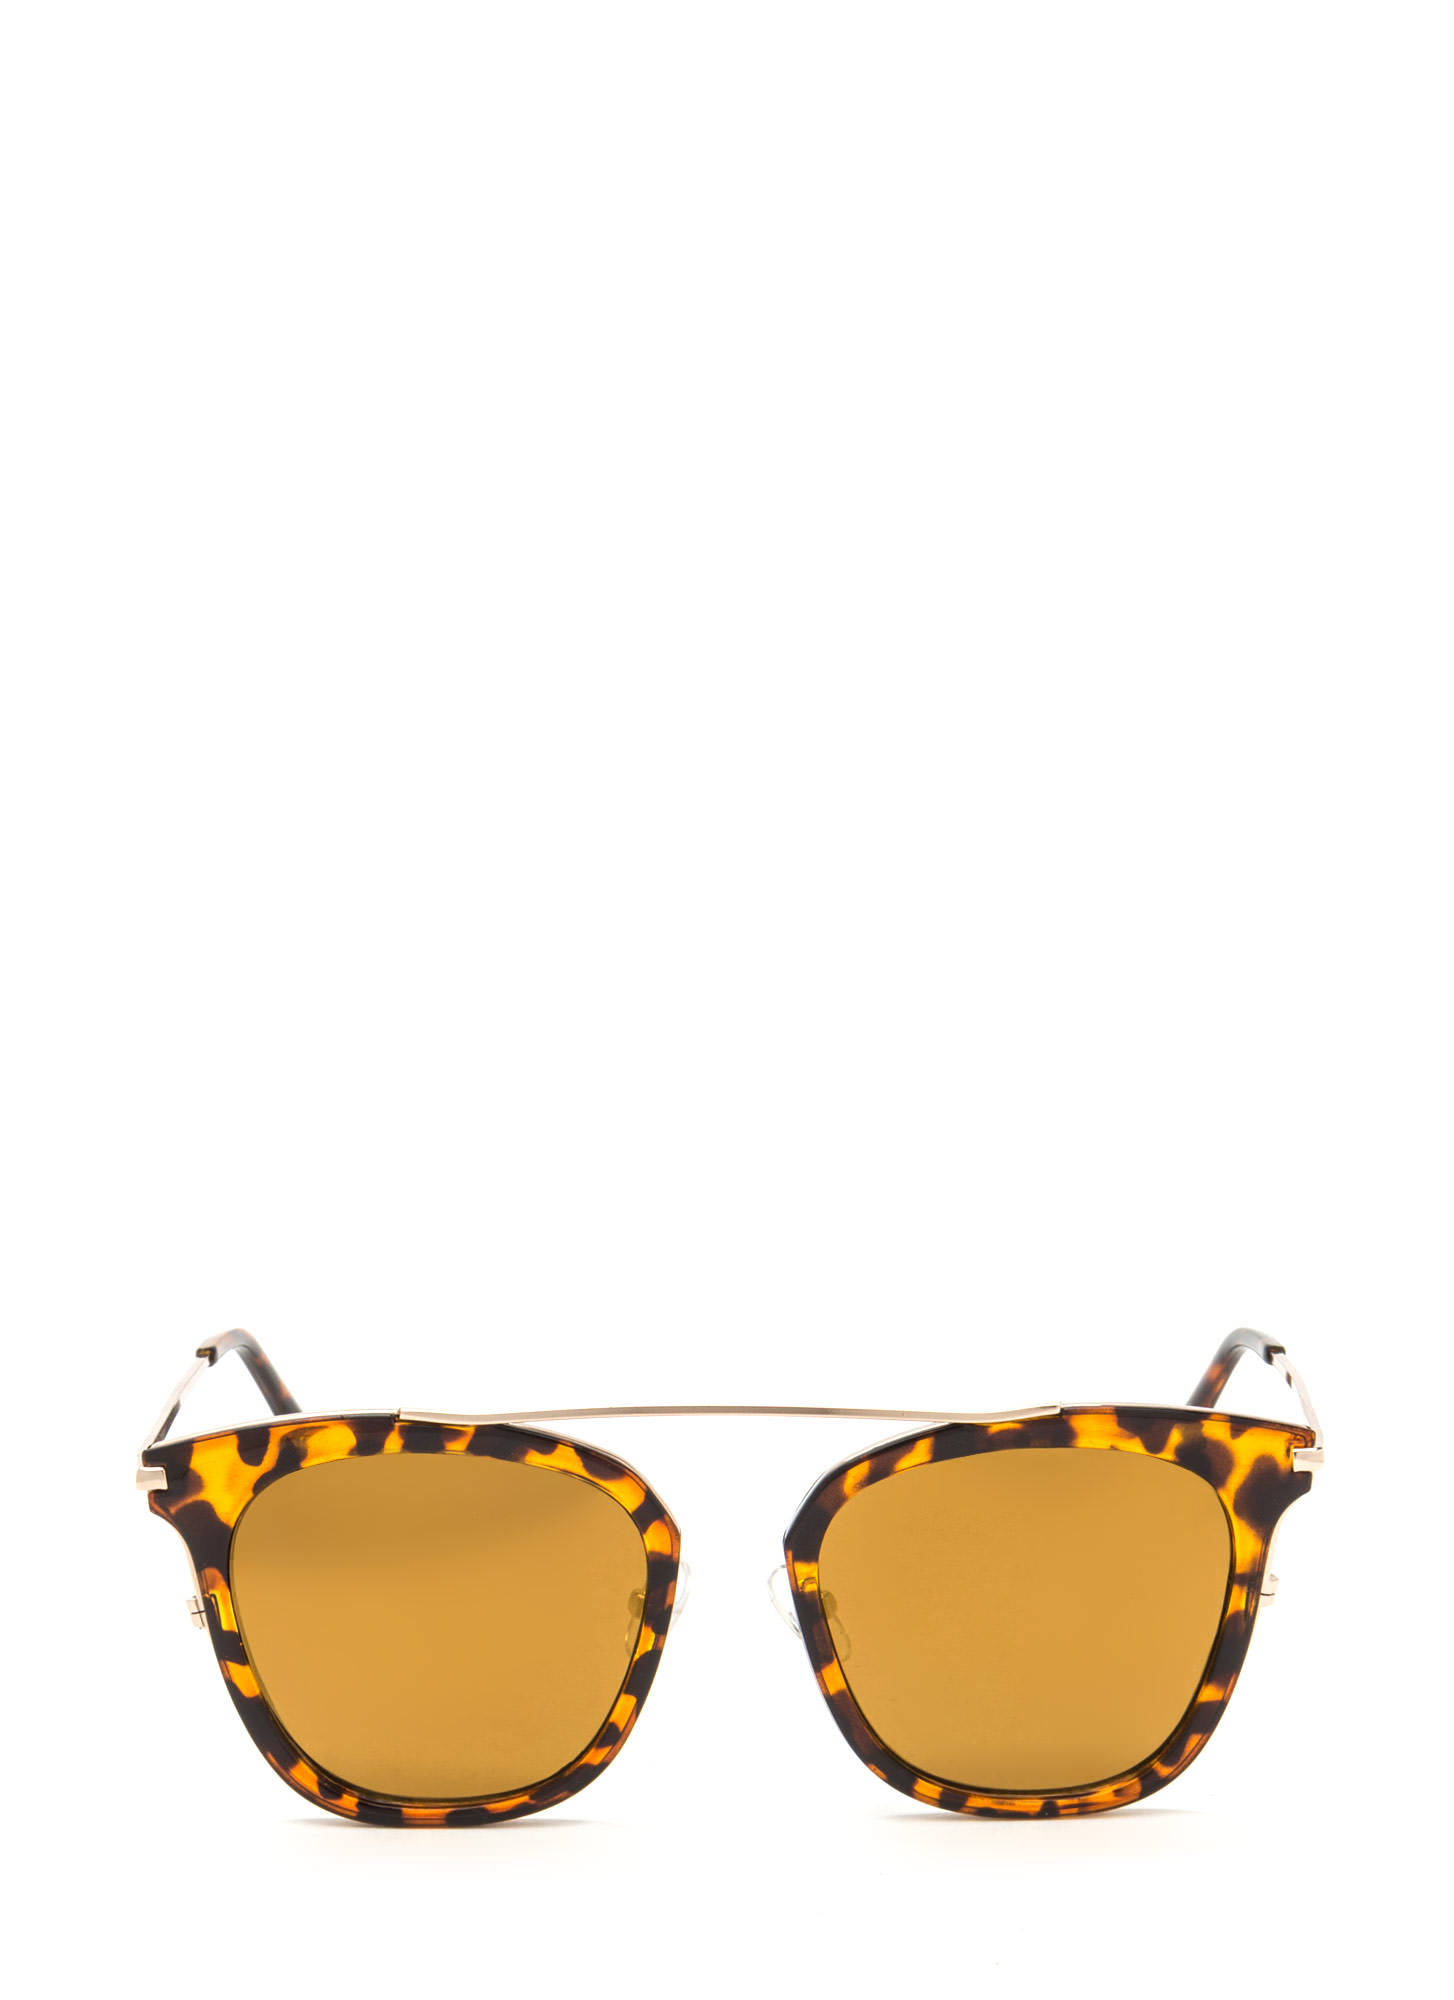 Future Is Bright Flat Sunglasses BROWNTORT